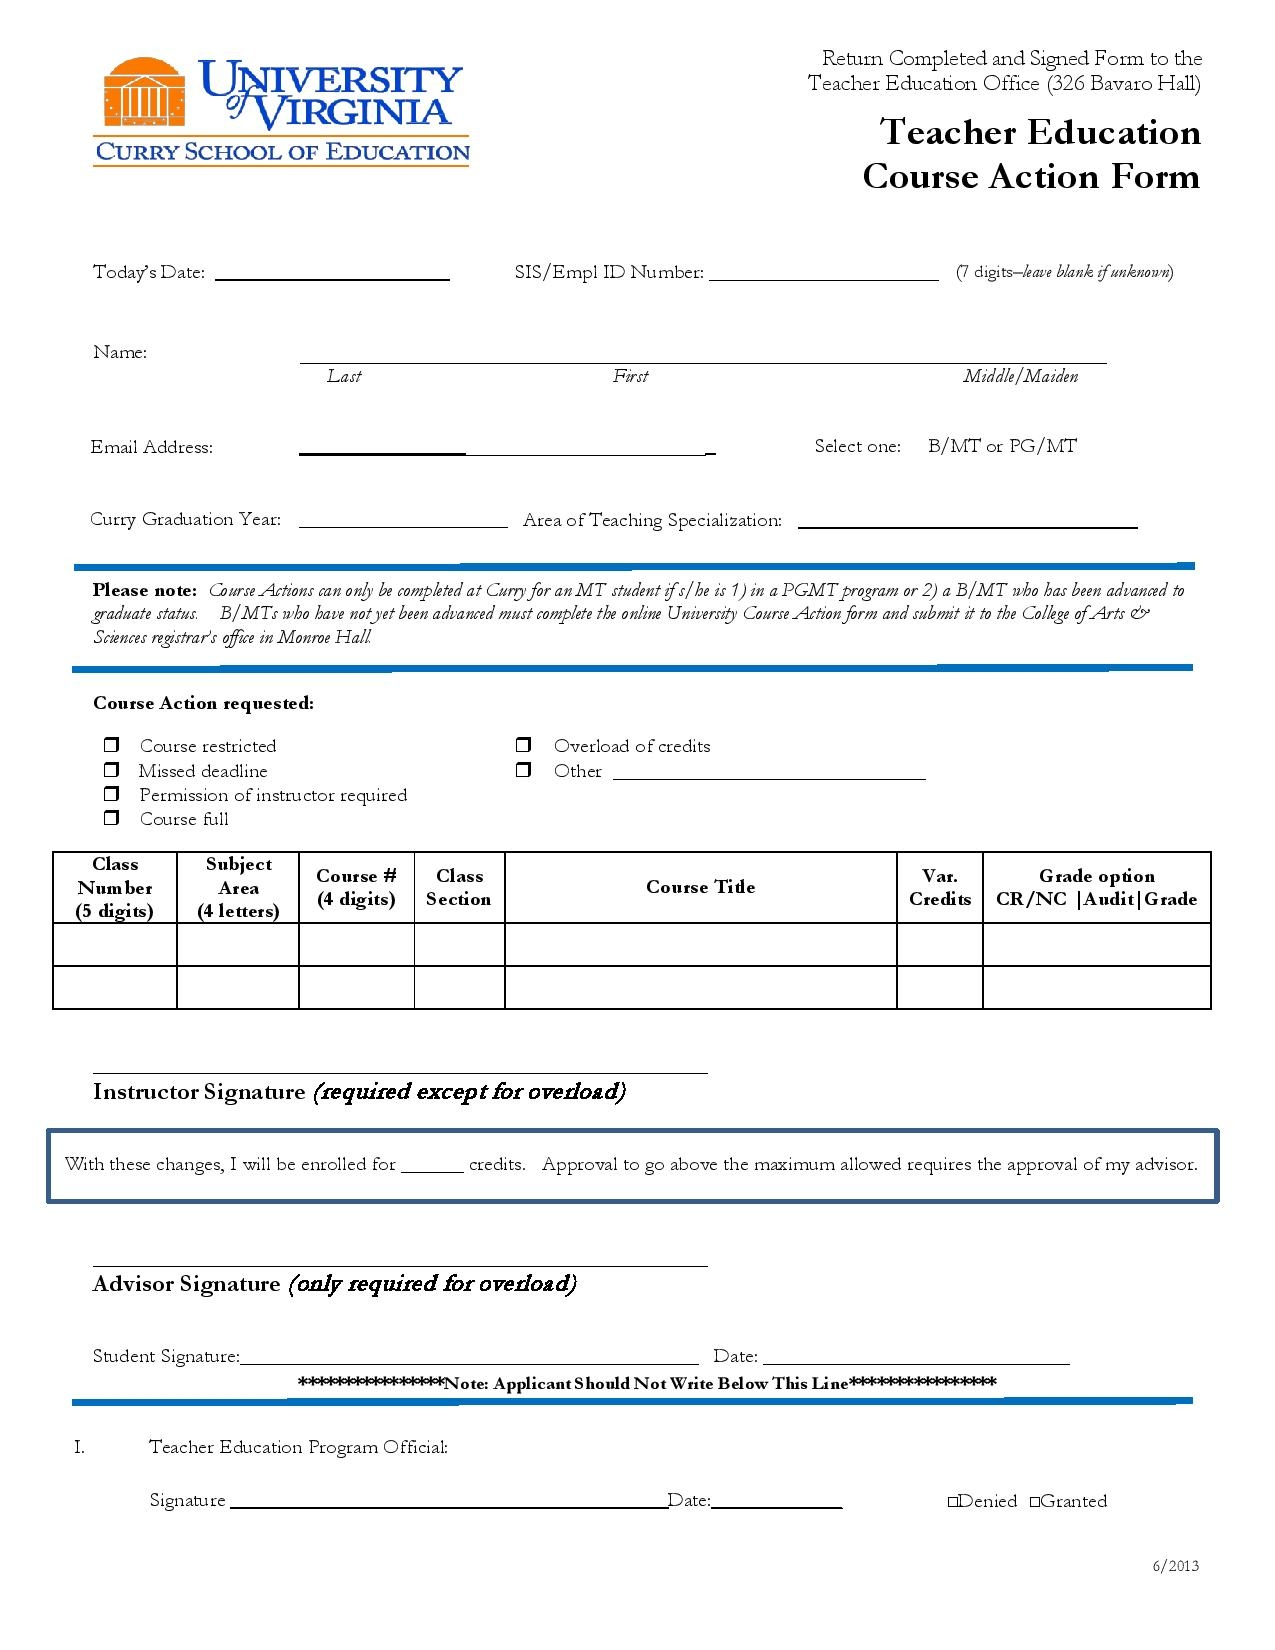 teacher education course action form page 001